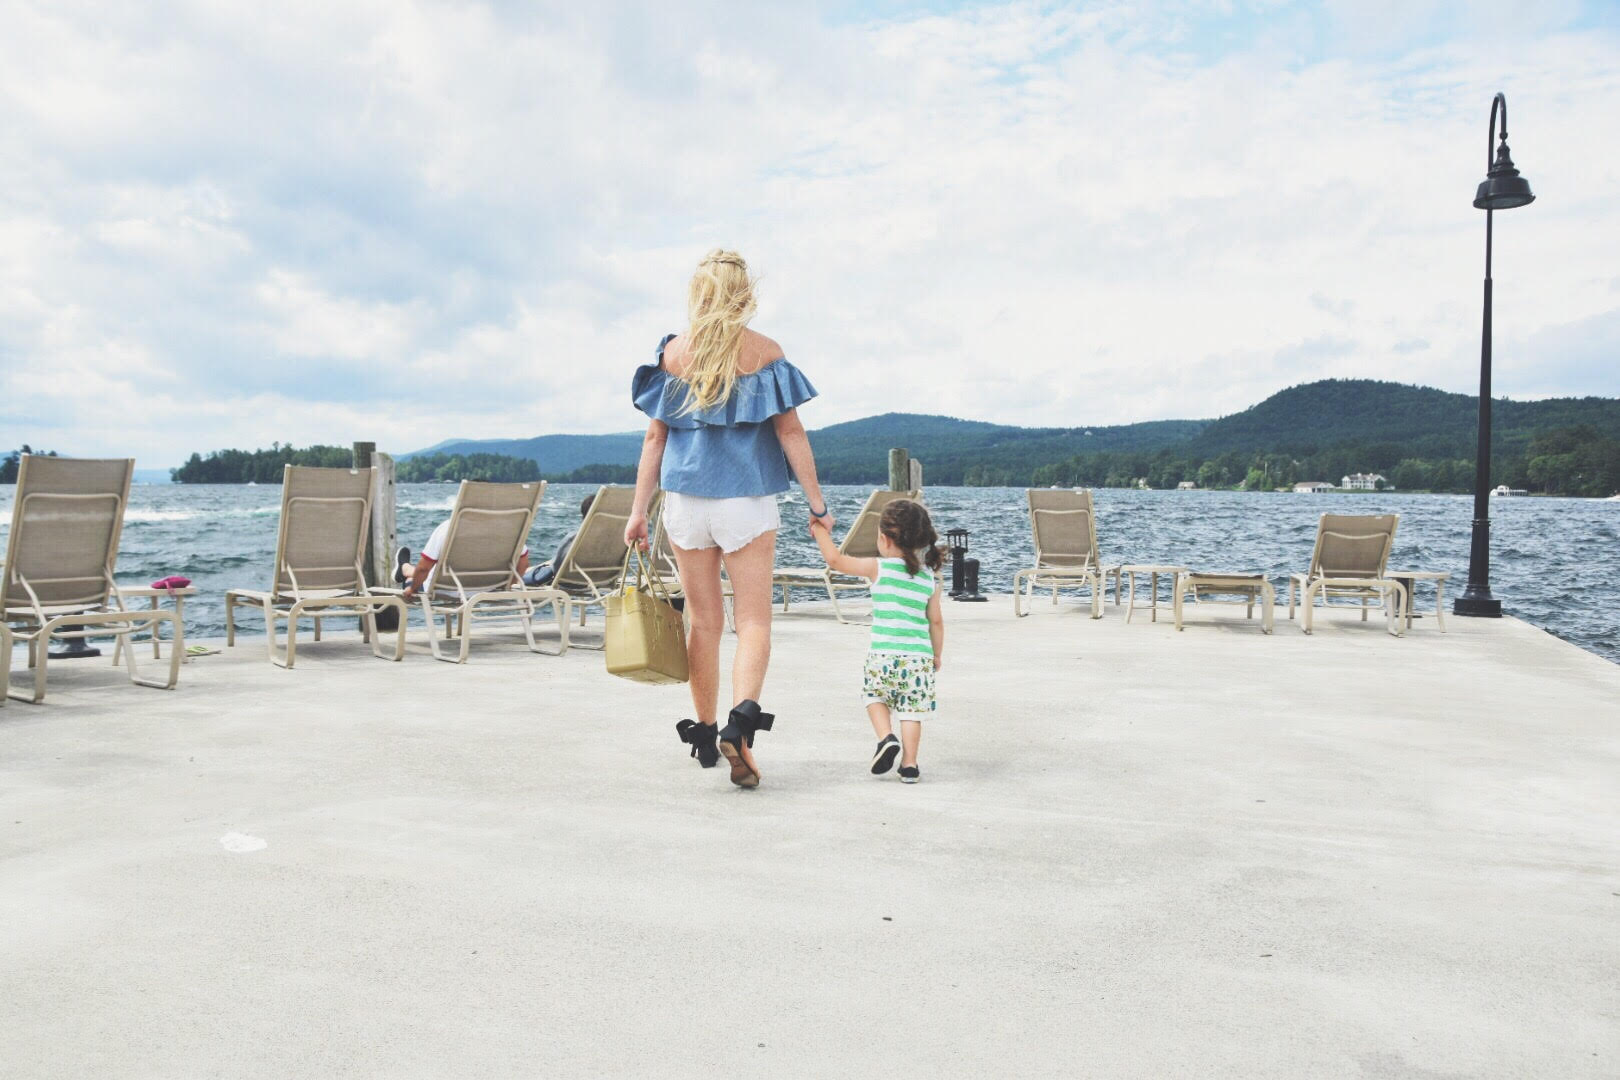 Mom and Child at the sagamore resort on lake george